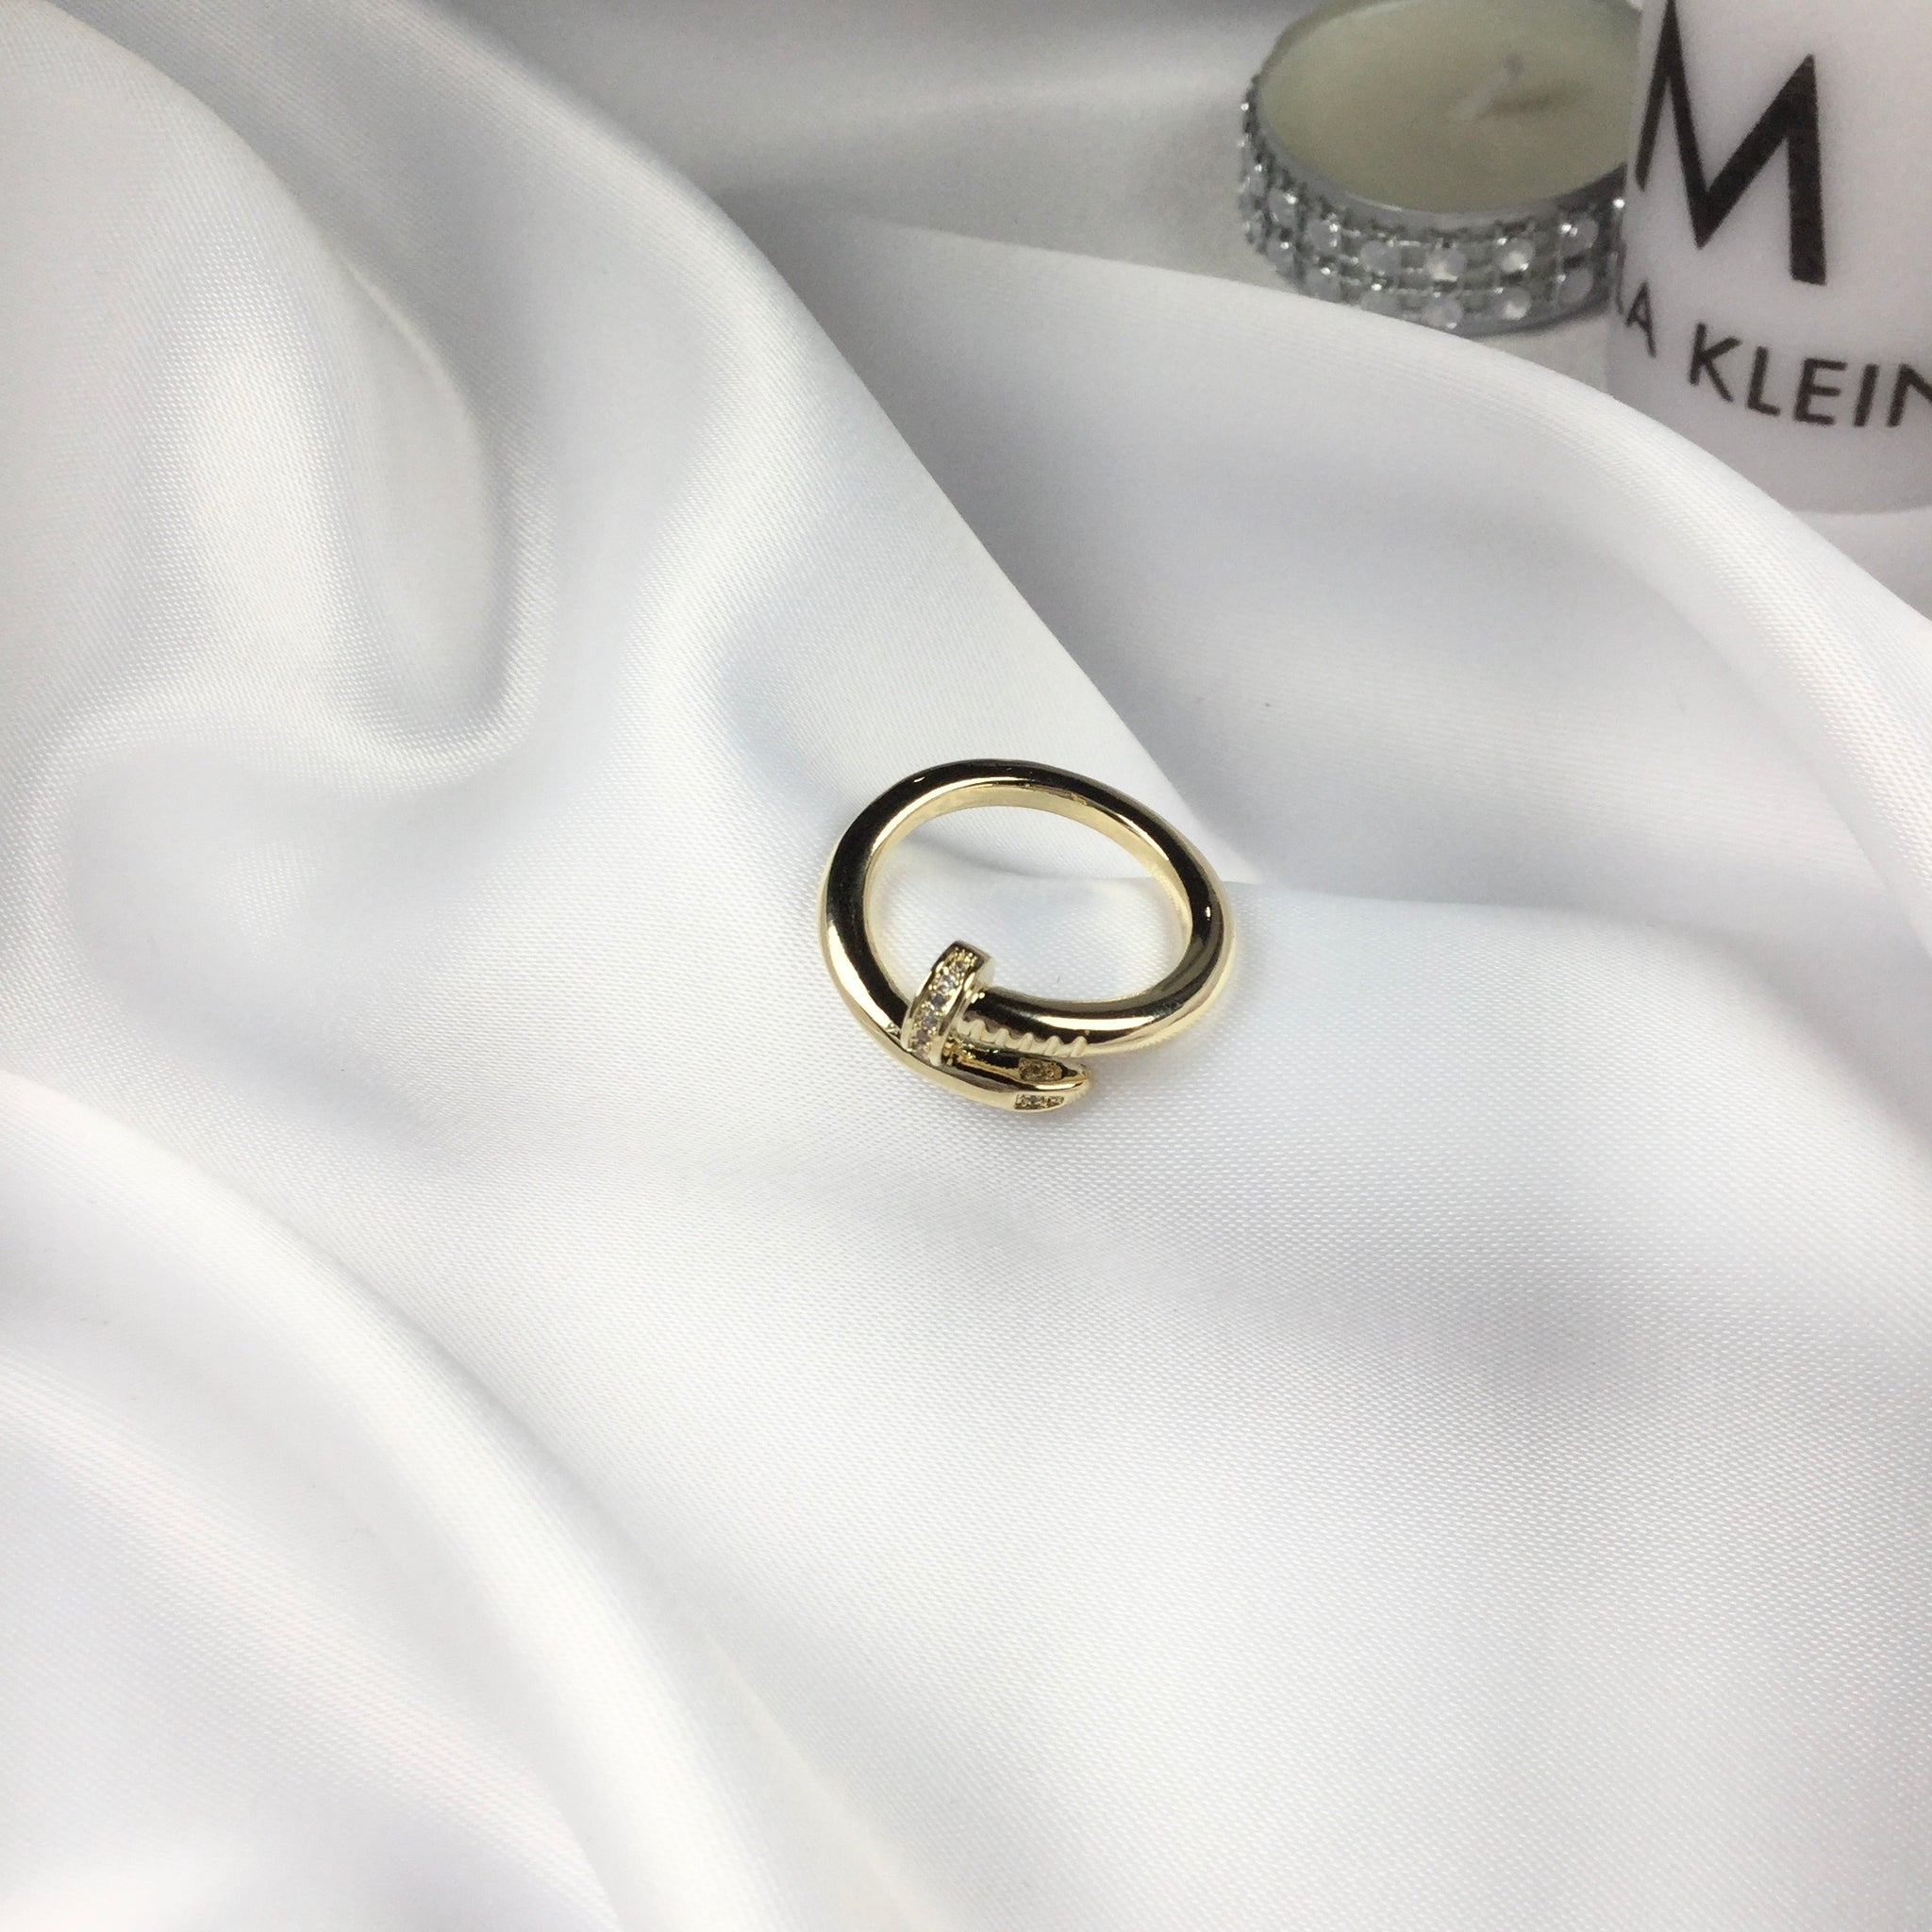 Famous Brand Inspired Nail Ring 18k Gold Plated 7,5 size